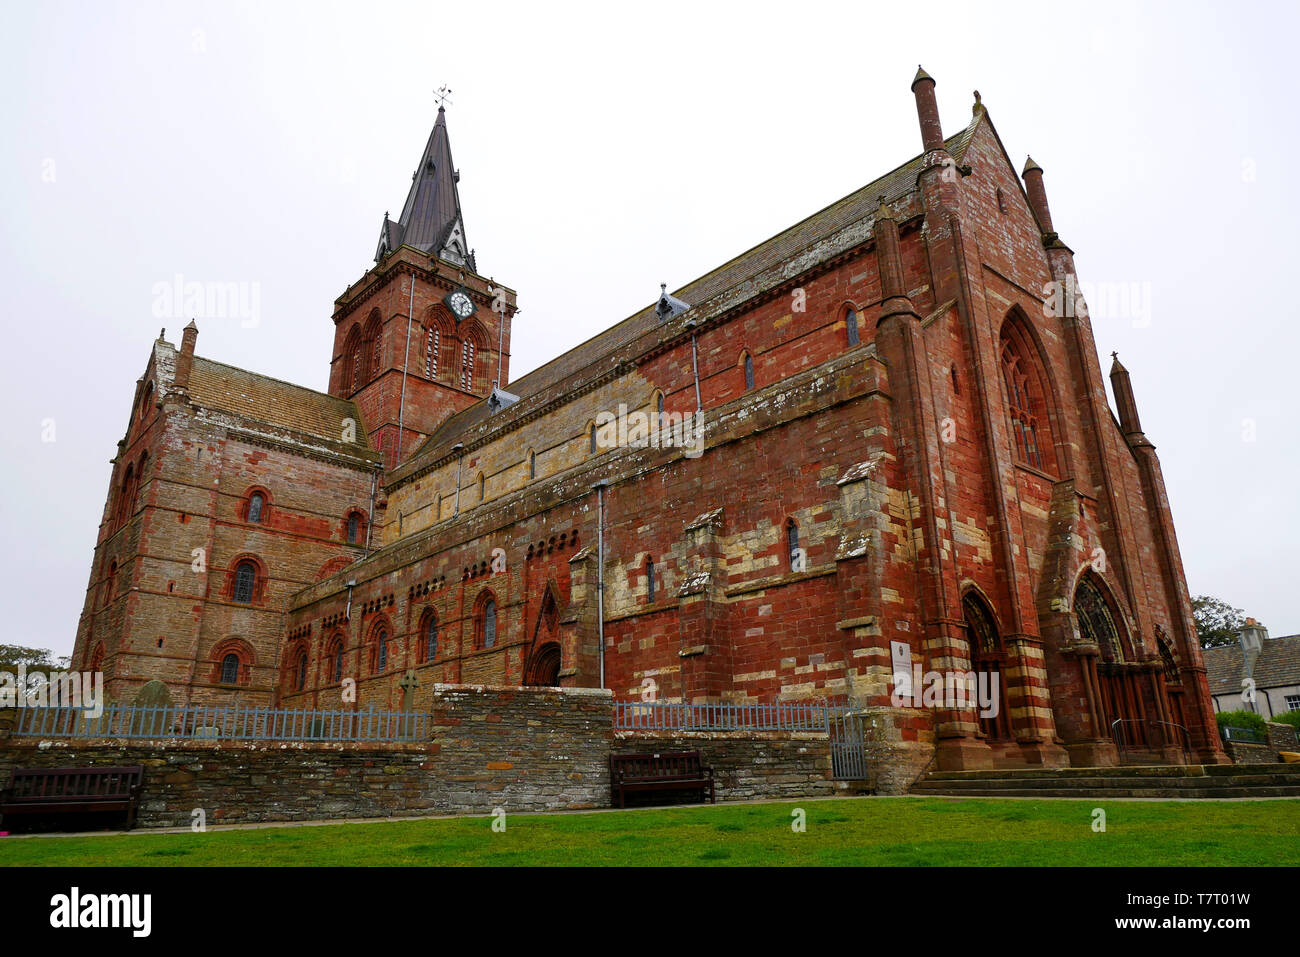 St. Magnus Cathedral, Kirkwall, Orkney, Scotland, UK Stock Photo